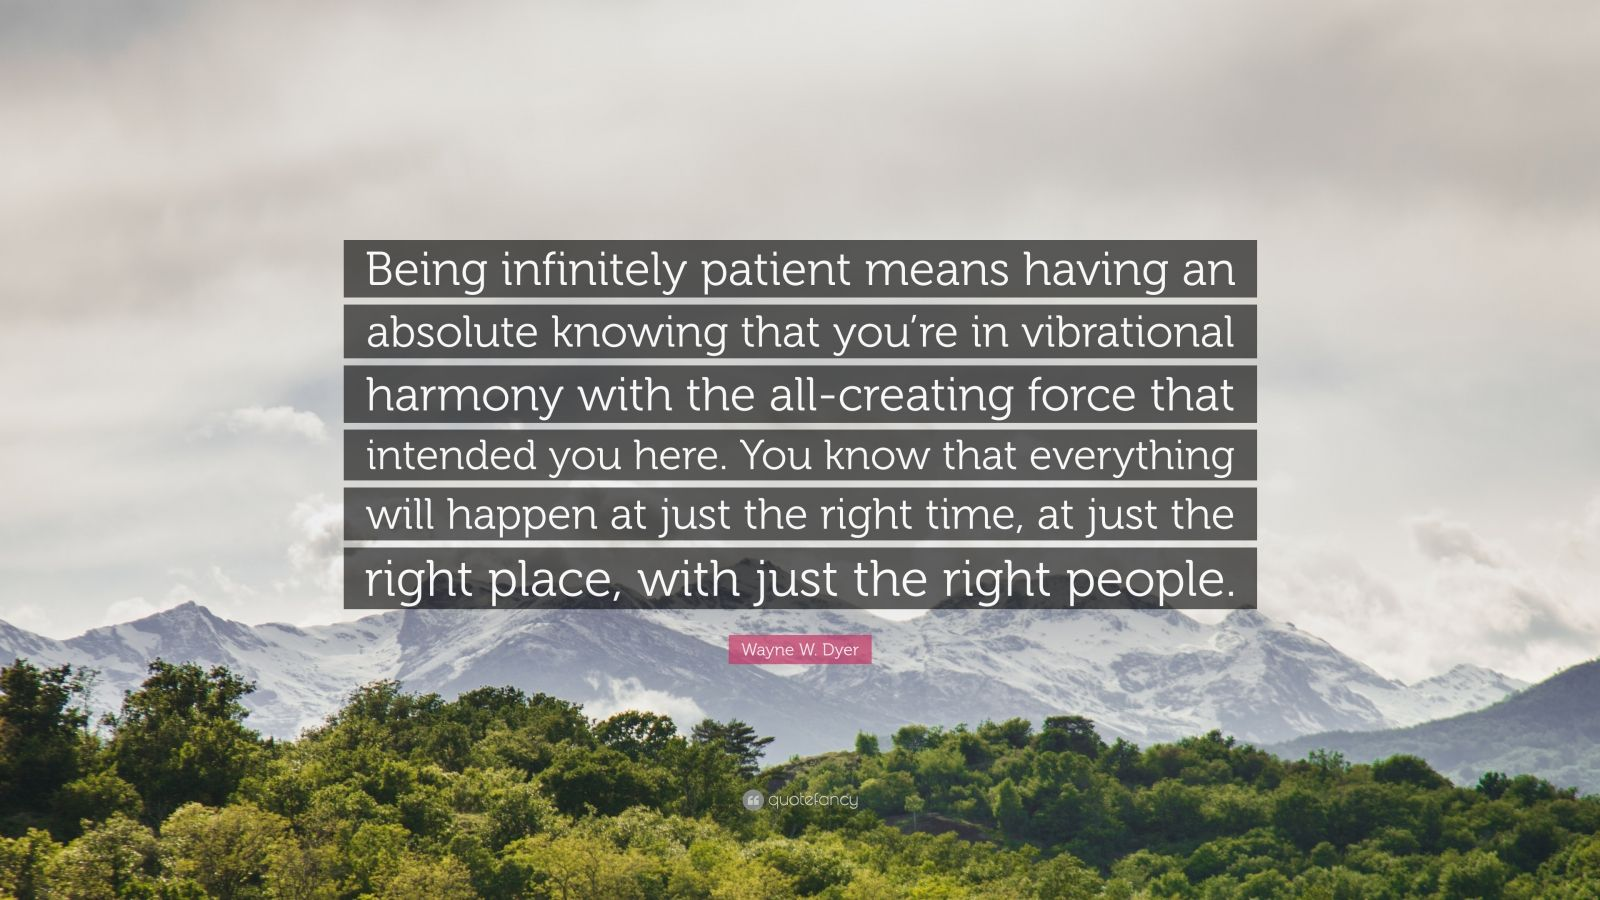 """Wayne W. Dyer Quote: """"Being infinitely patient means having an absolute knowing that you're in vibrational harmony with the all-creating force that intended you here. You know that everything will happen at just the right time, at just the right place, with just the right people."""""""